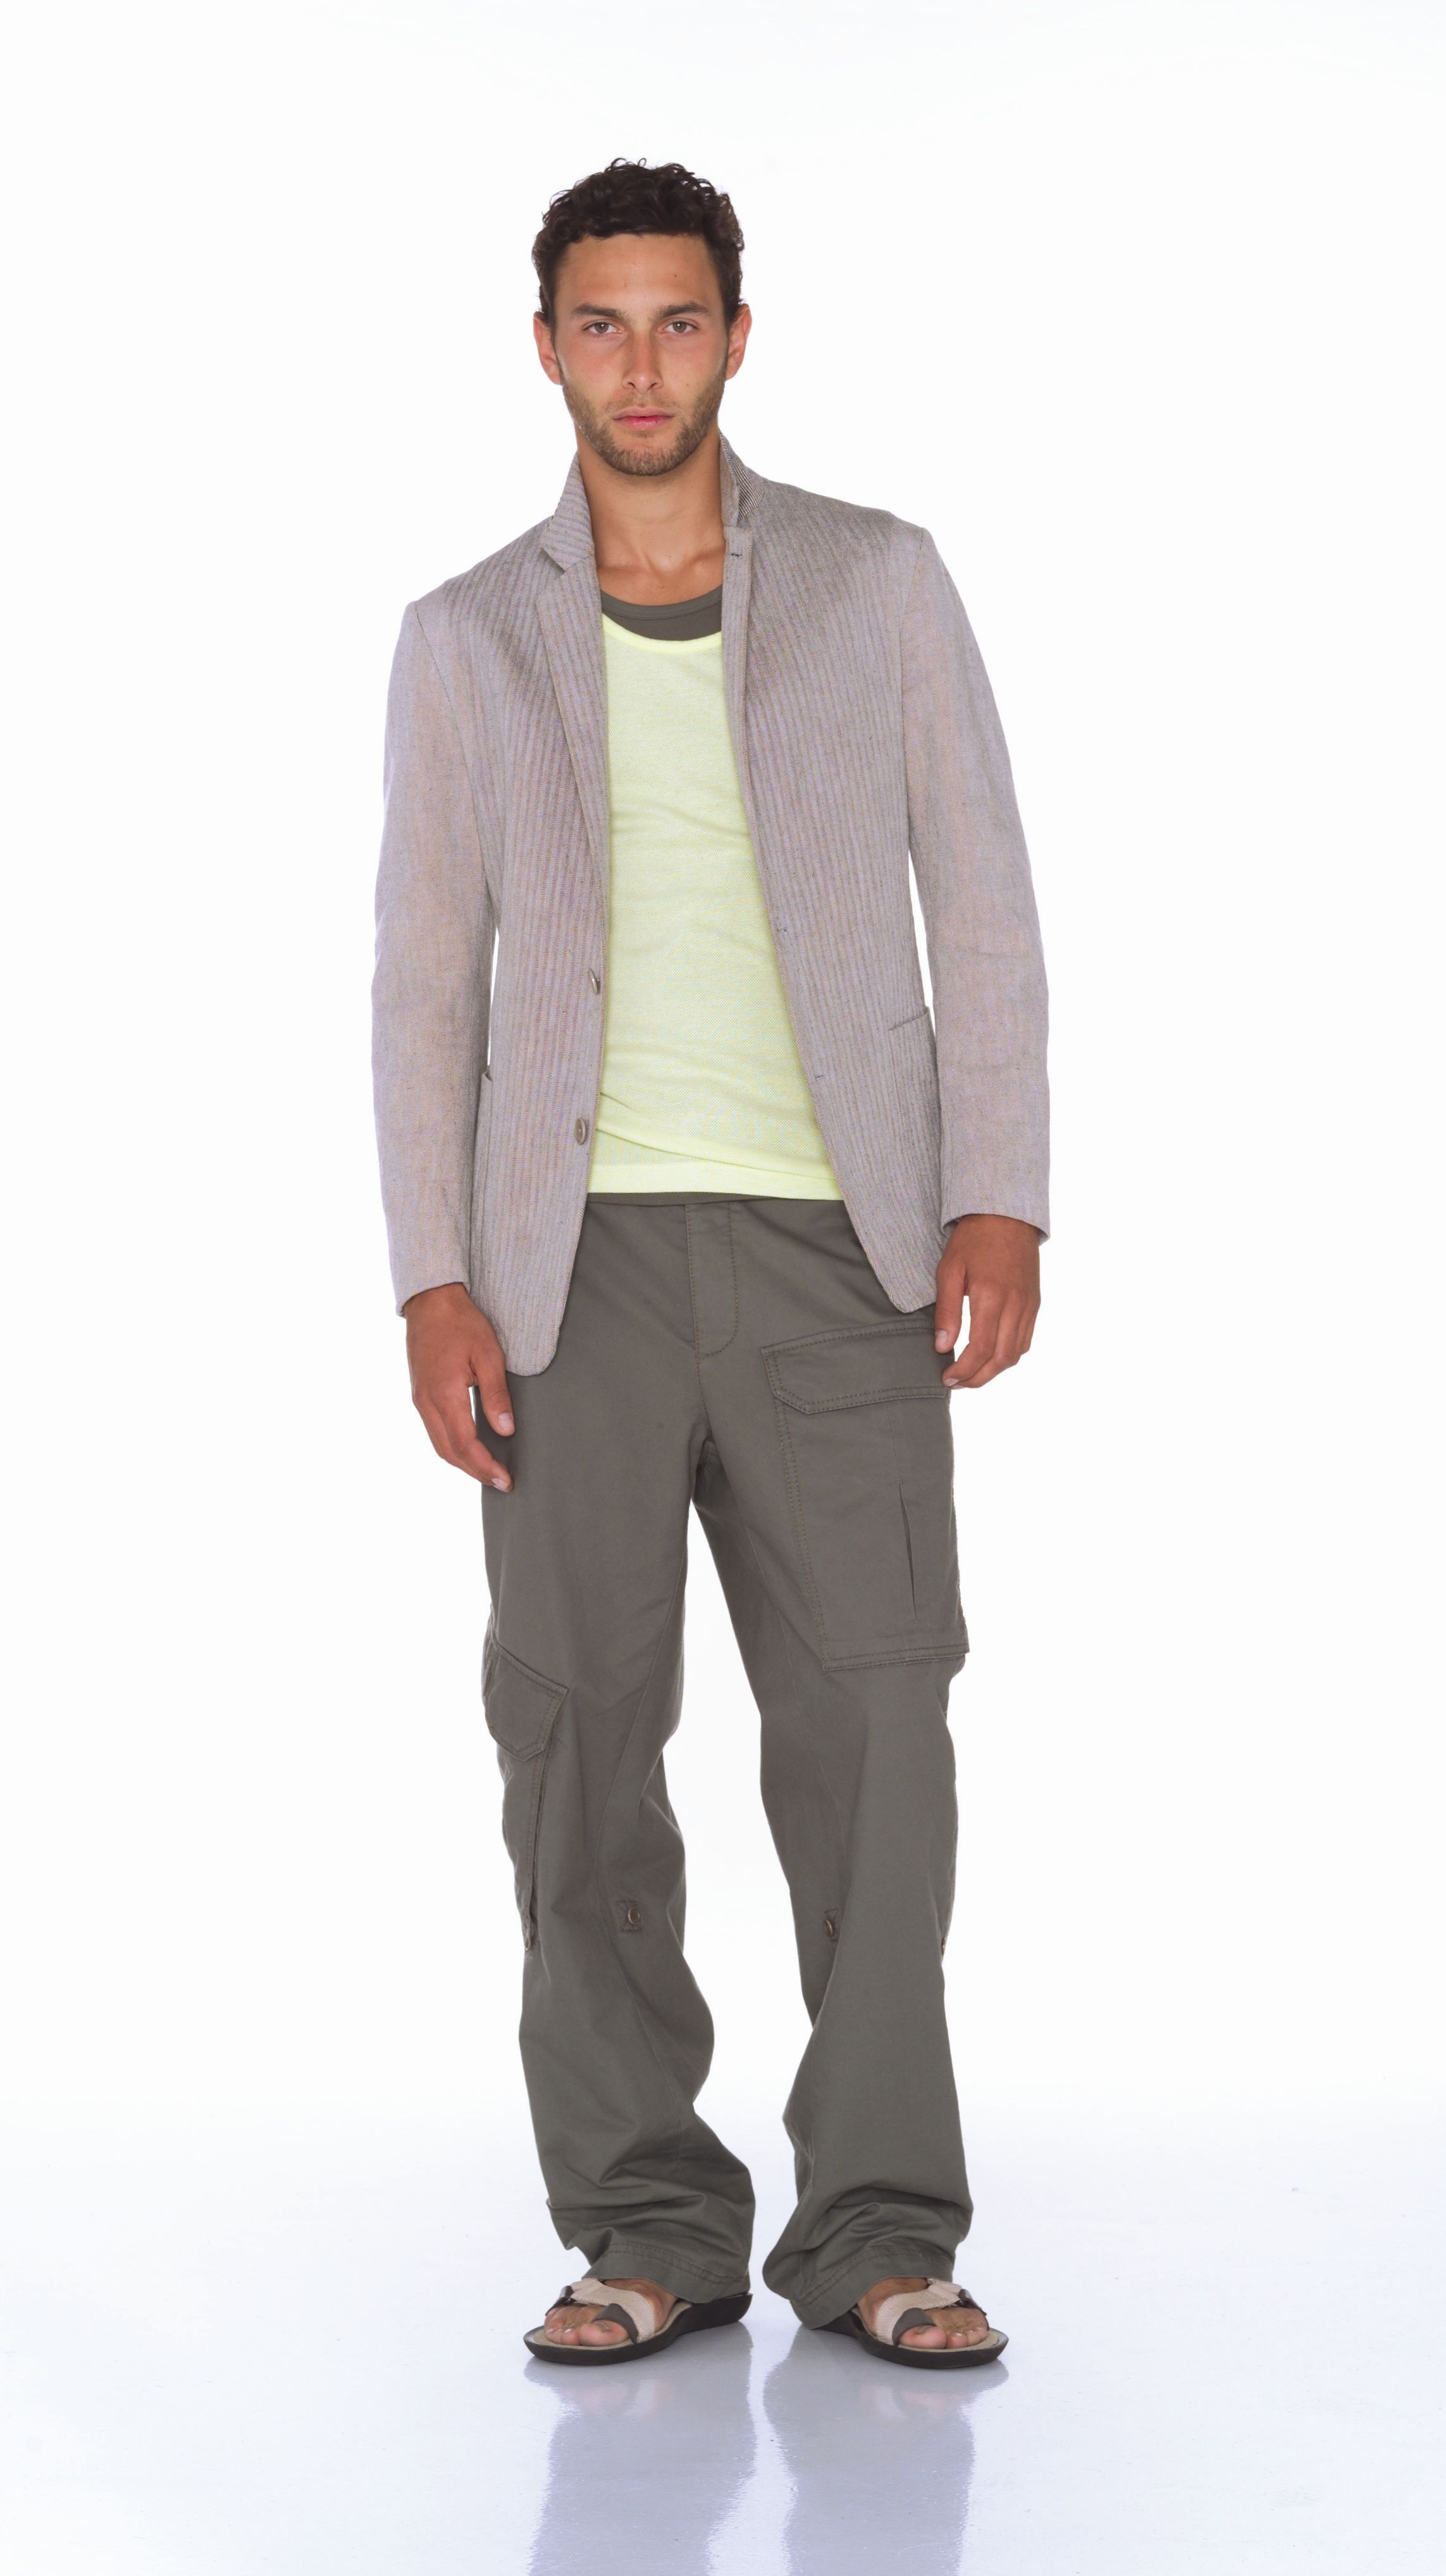 Business casual men fashion - the vest dresses it up so he can ...